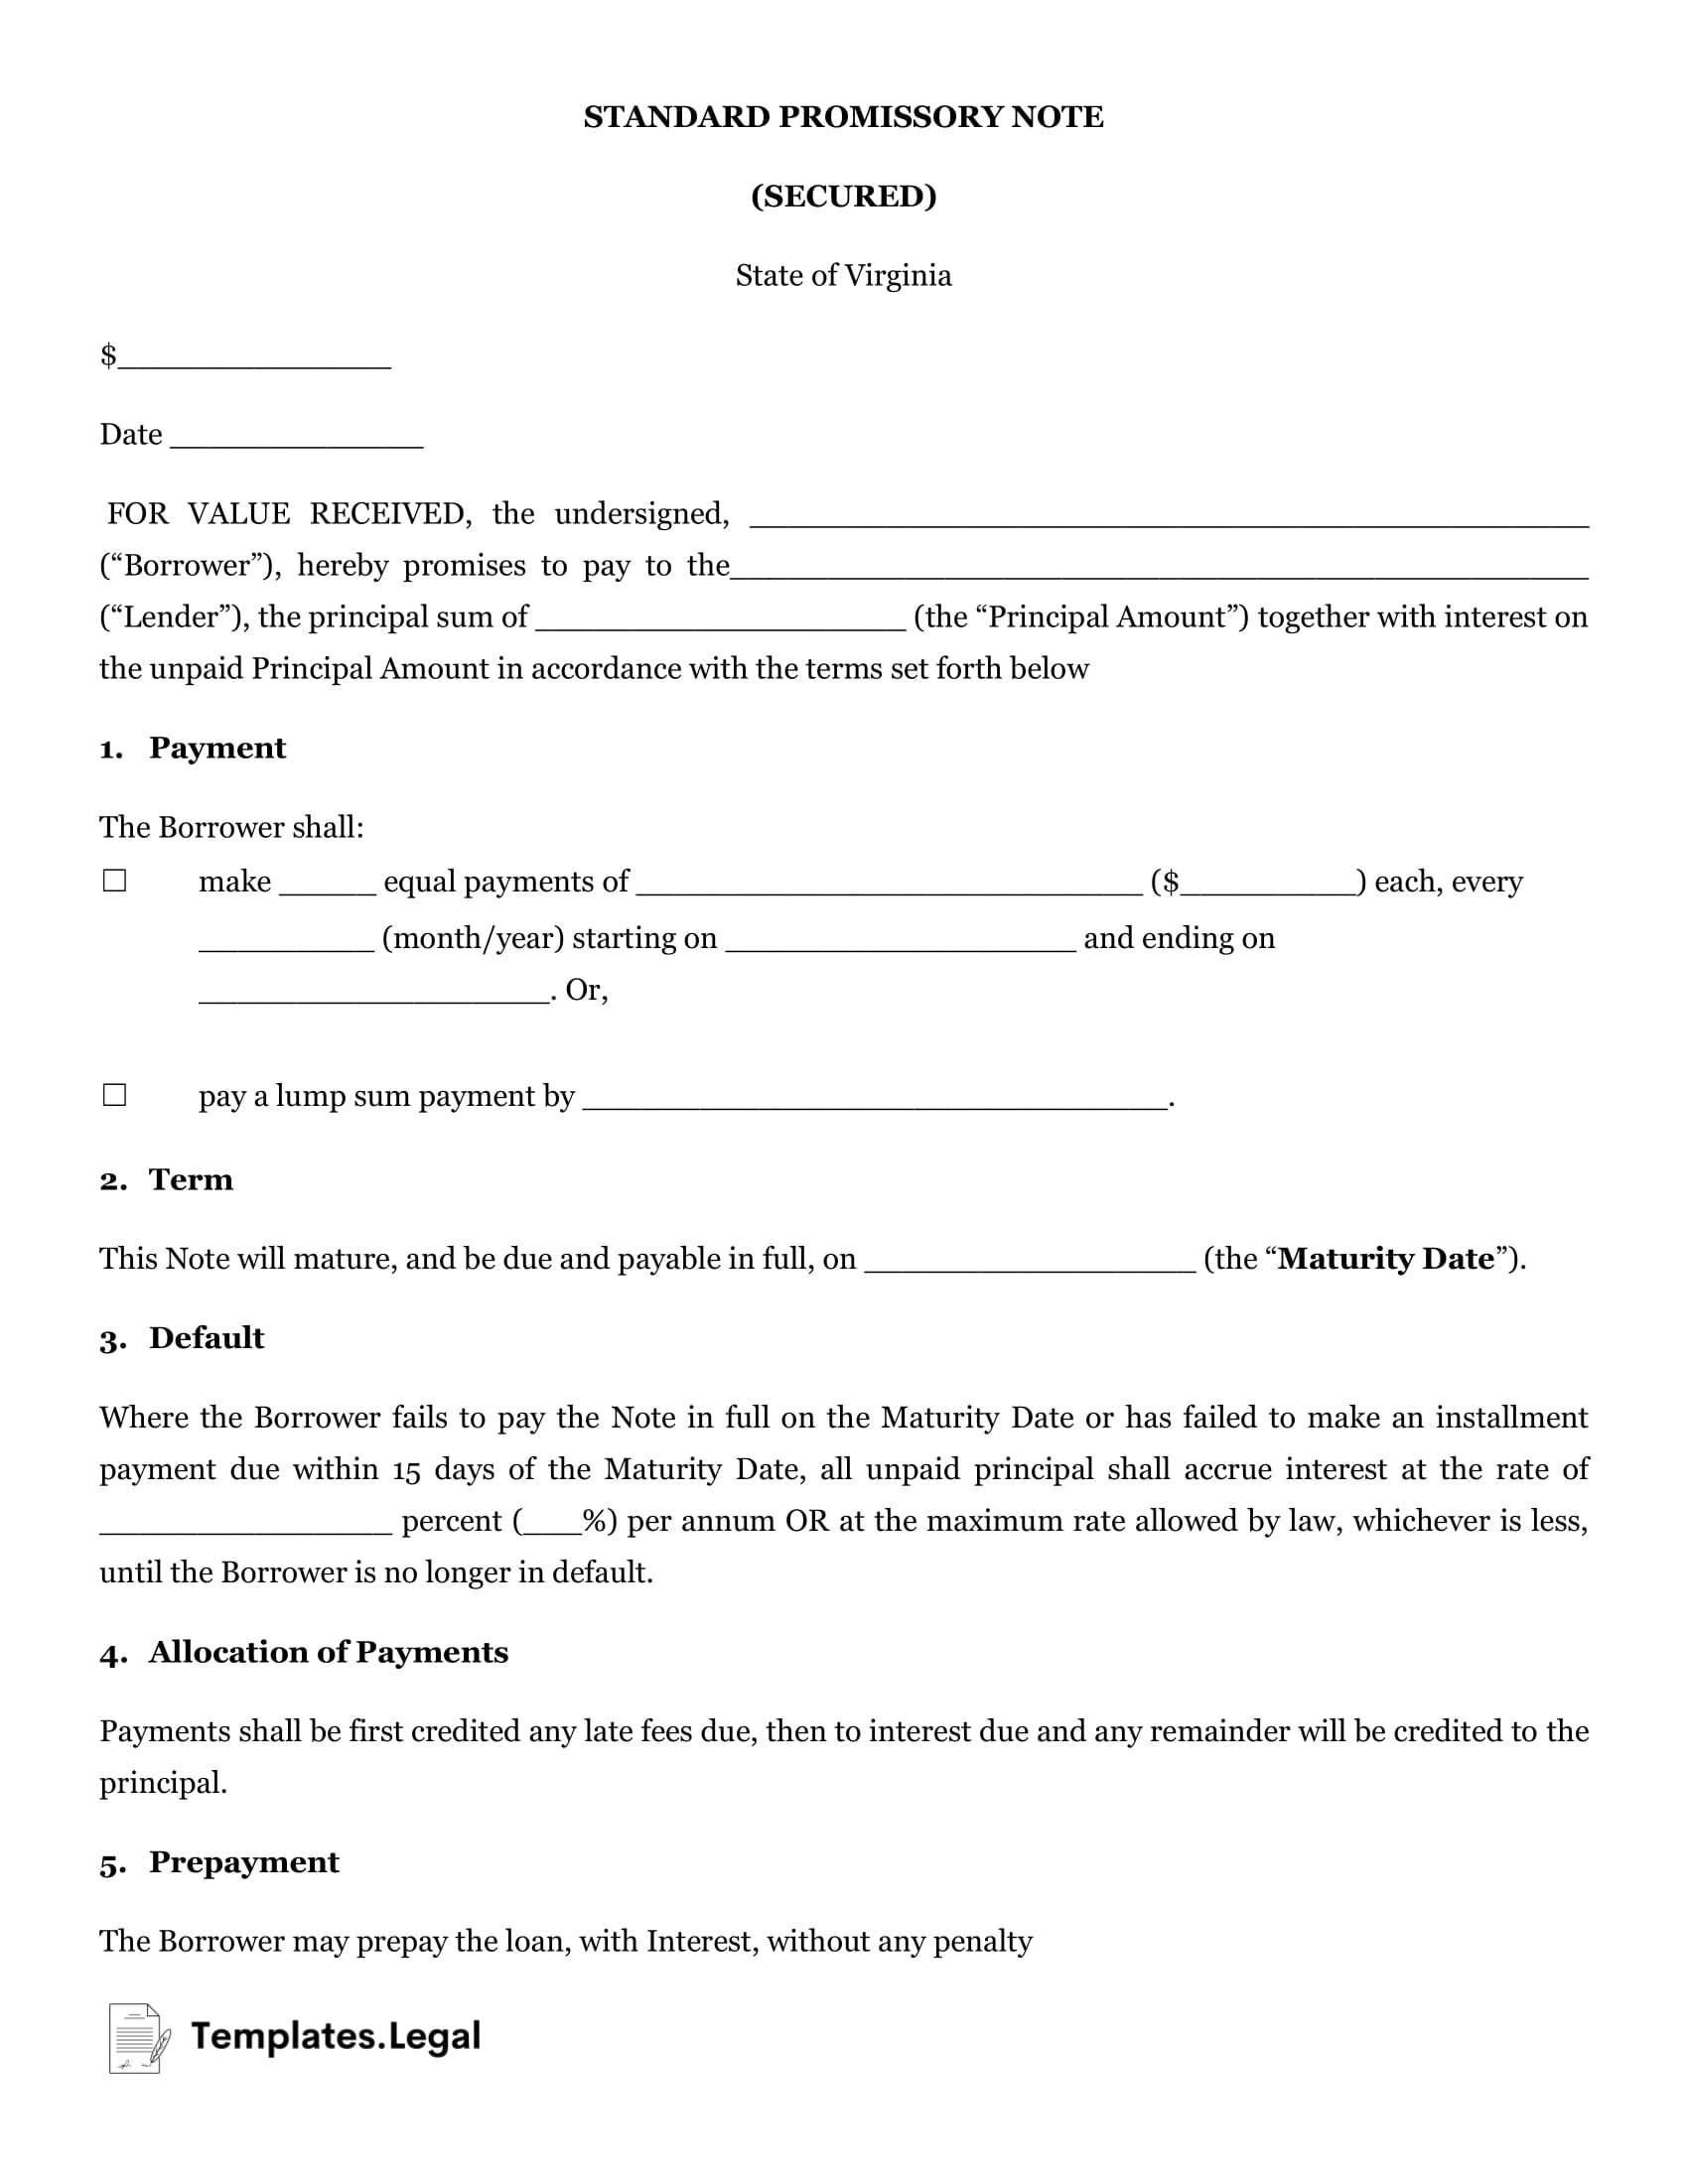 Virginia Secured Promissory Note - Templates.Legal